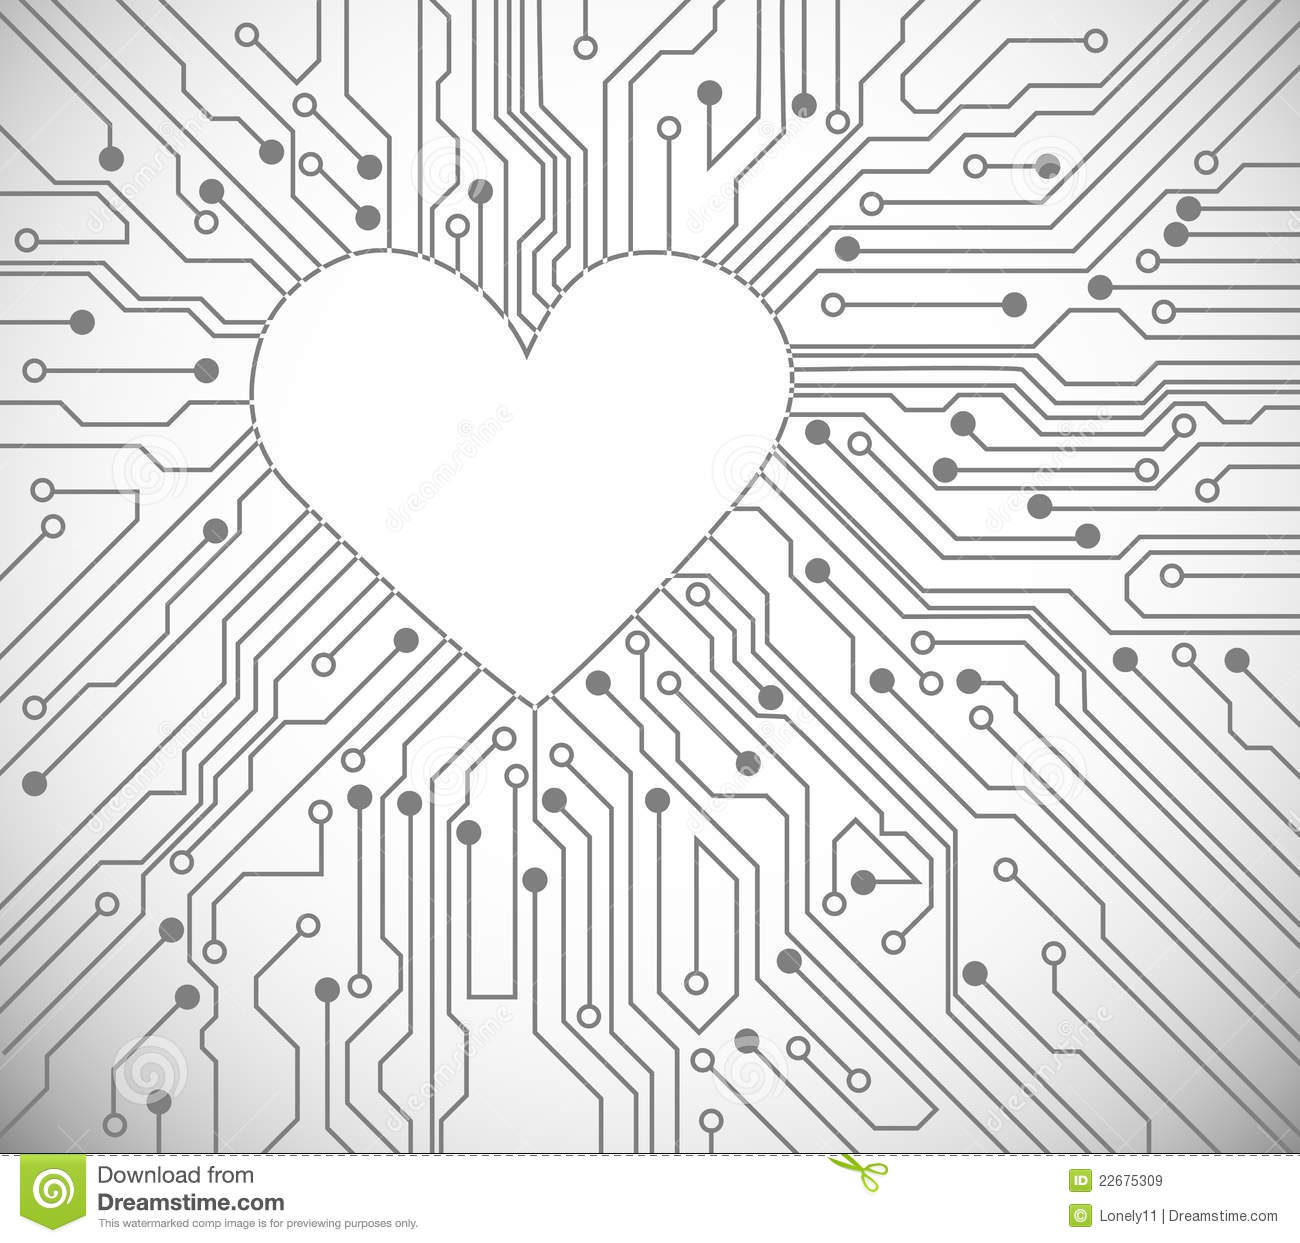 Heart From Circuit Royalty Free Stock Images